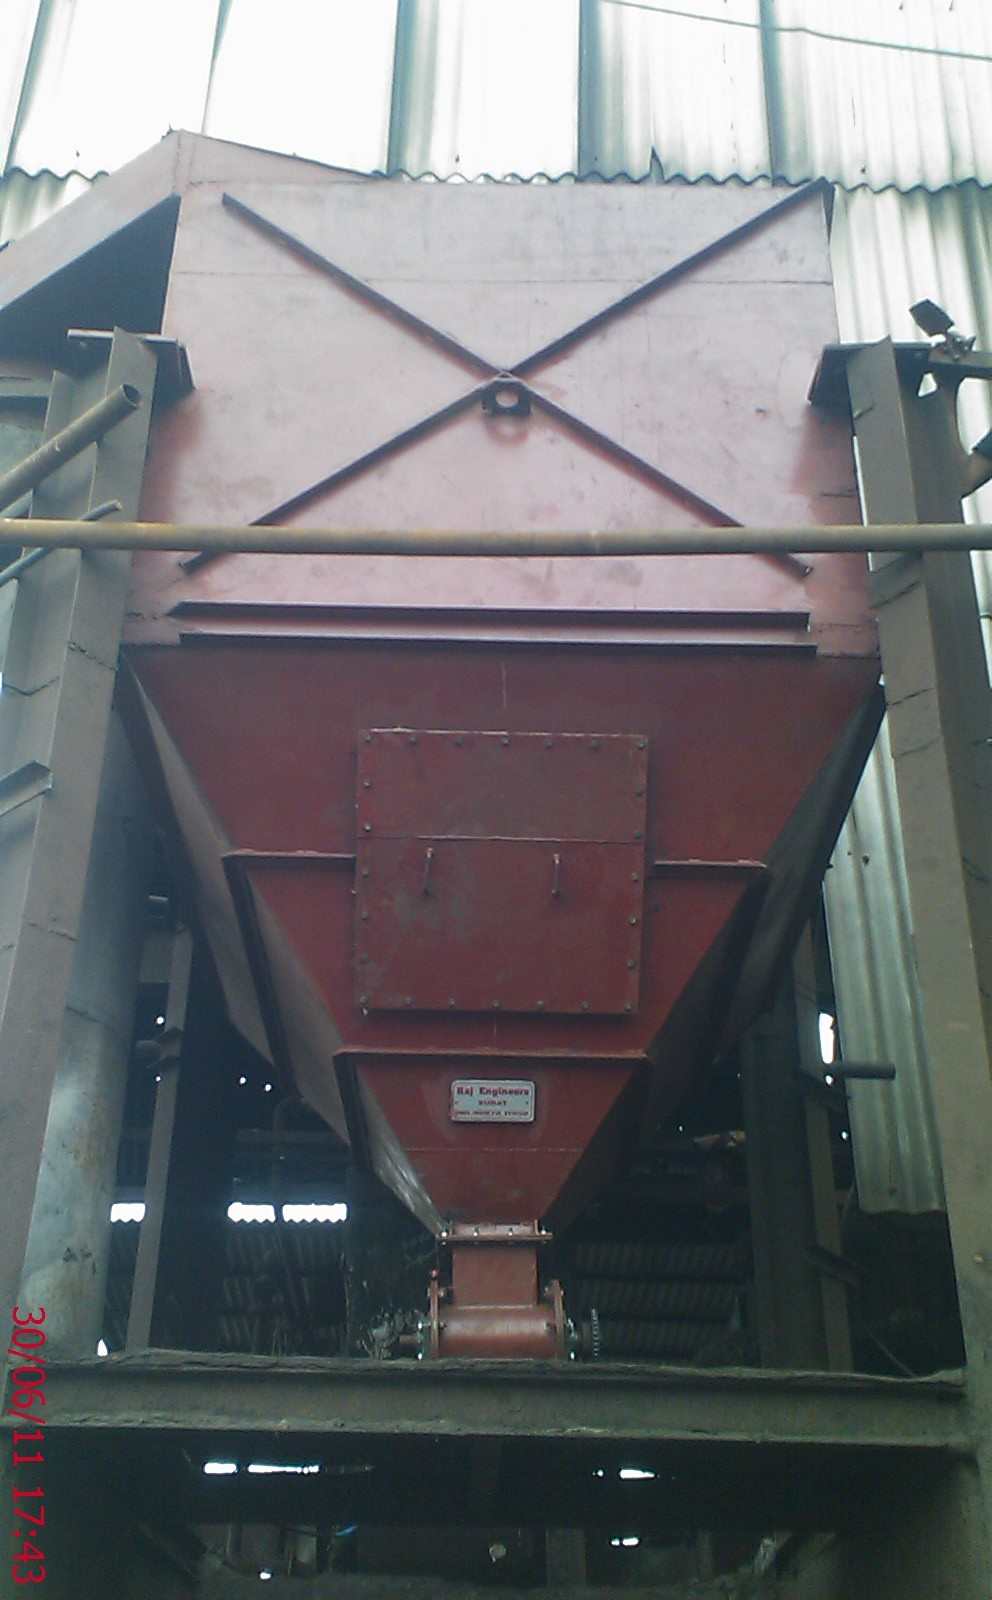 Multi Cyclone Dust Collector (MDC)